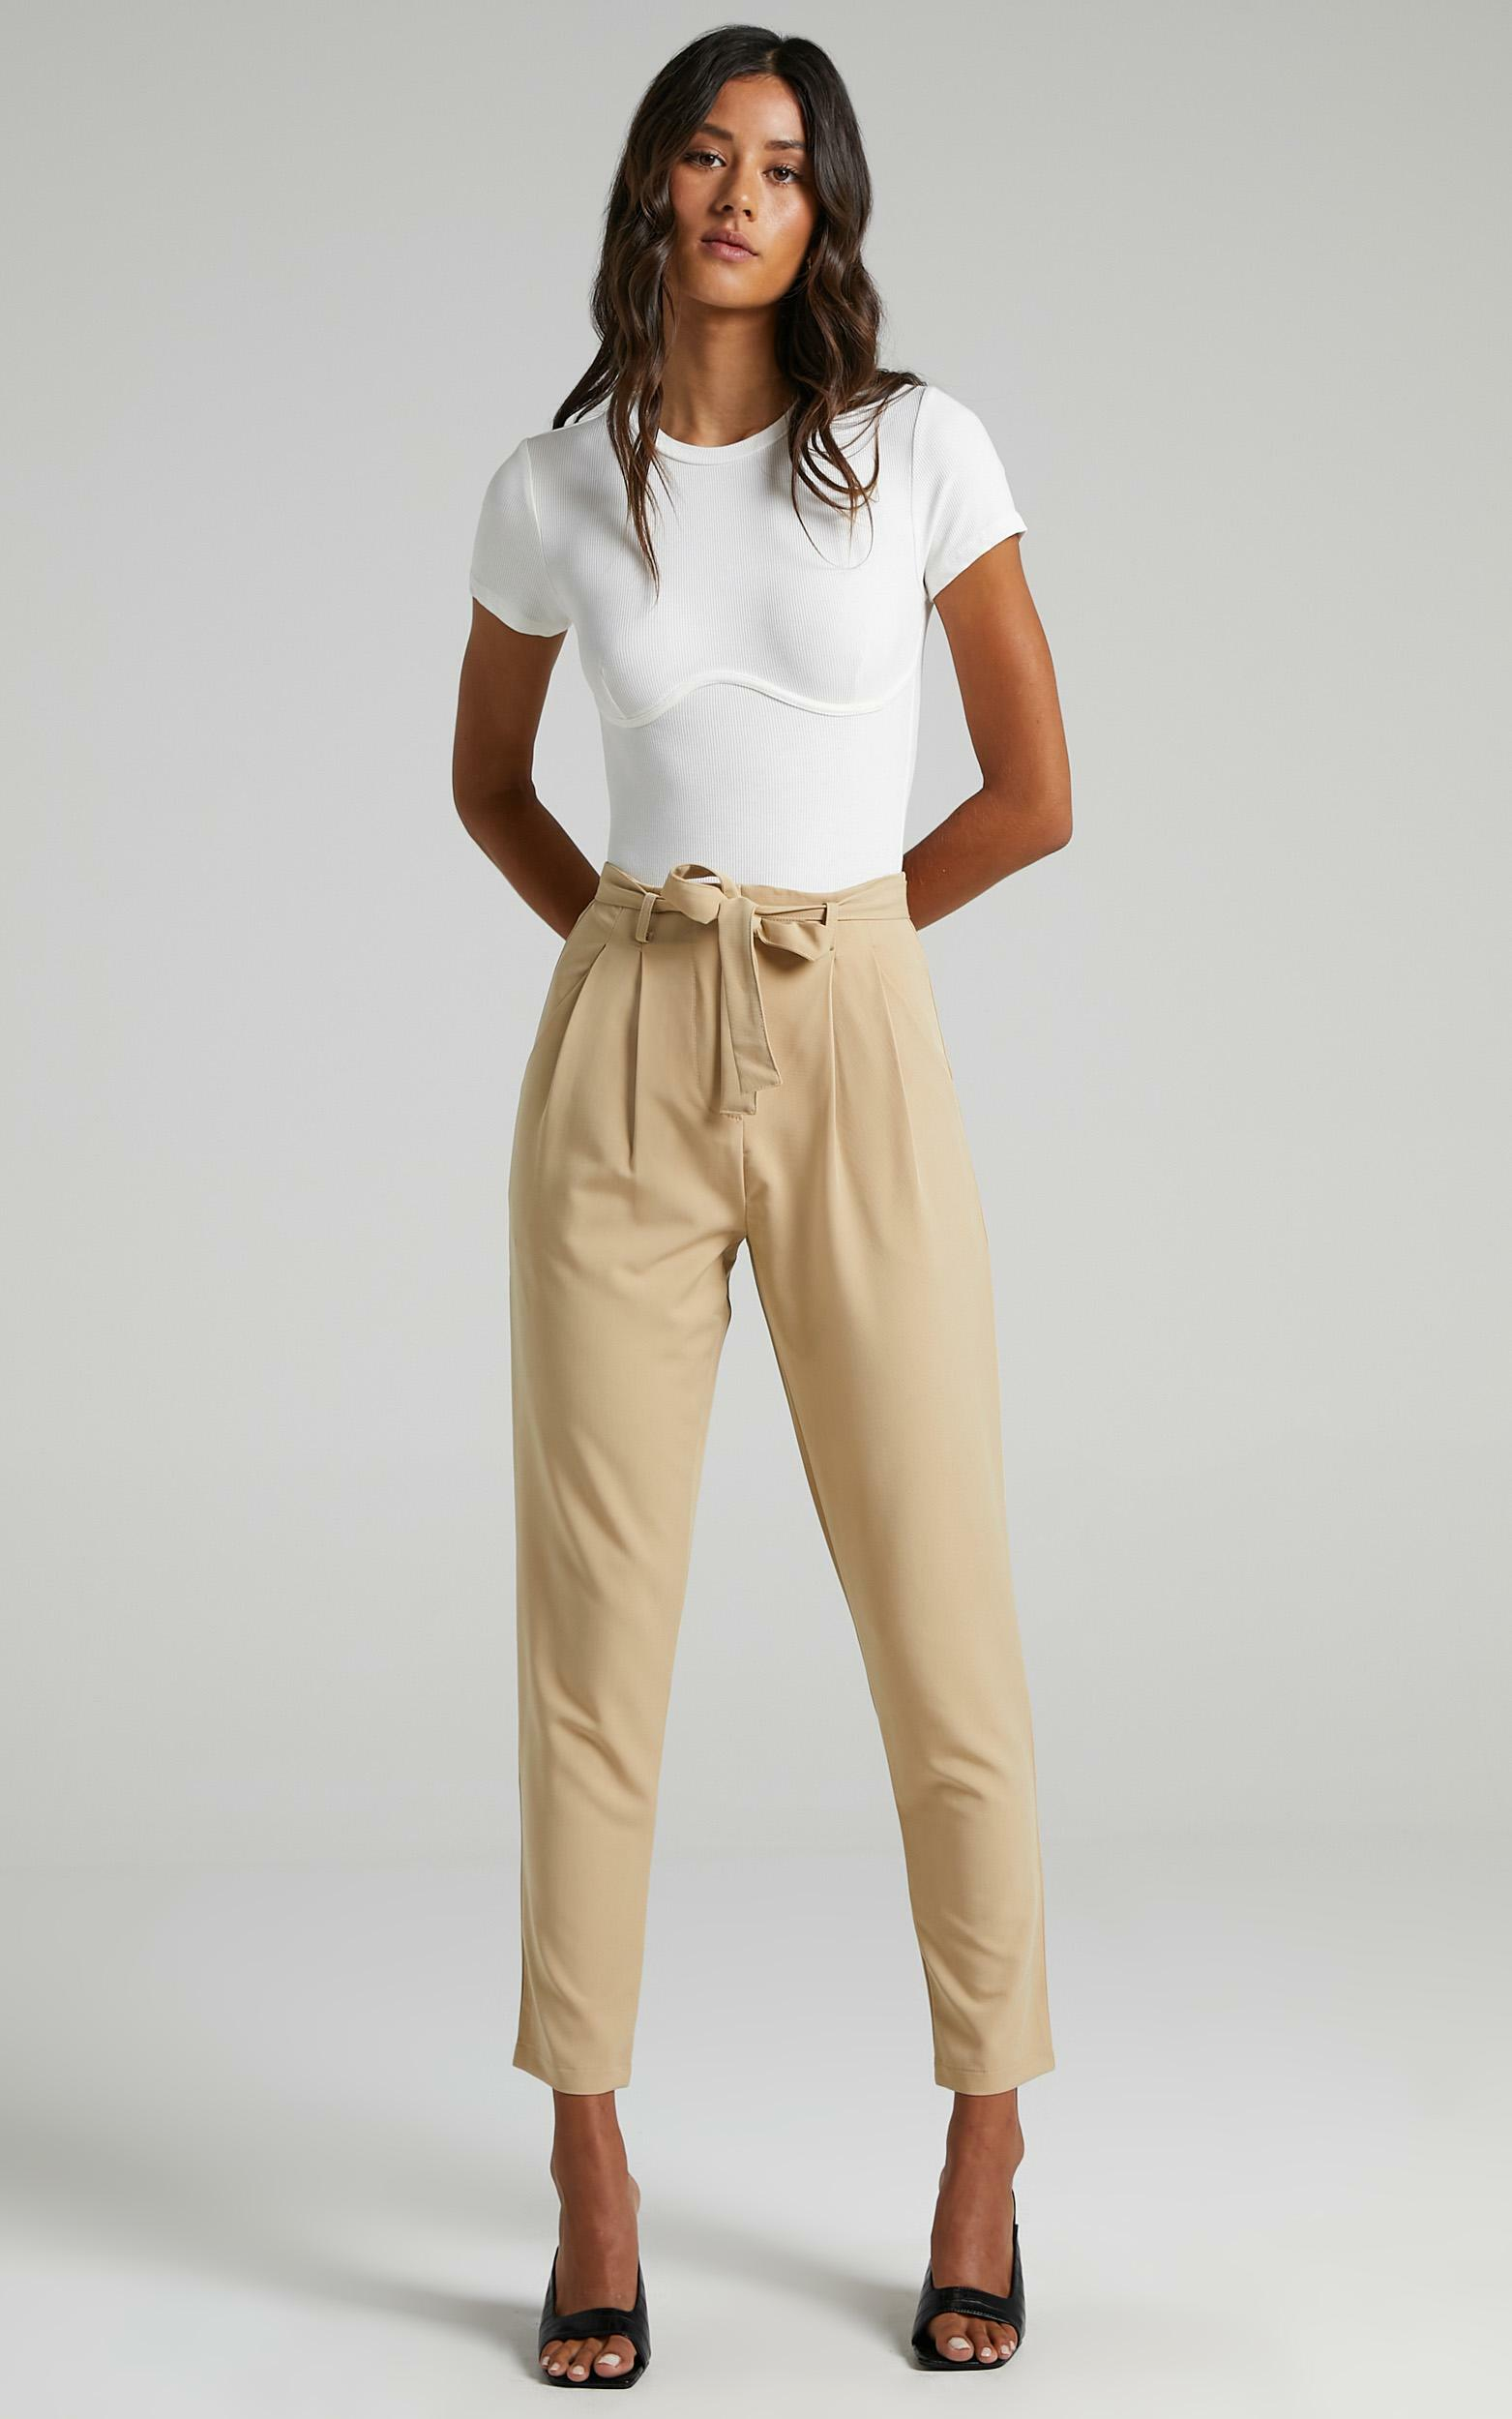 Building My Empire Pants in Camel - 6 (XS), Camel, hi-res image number null